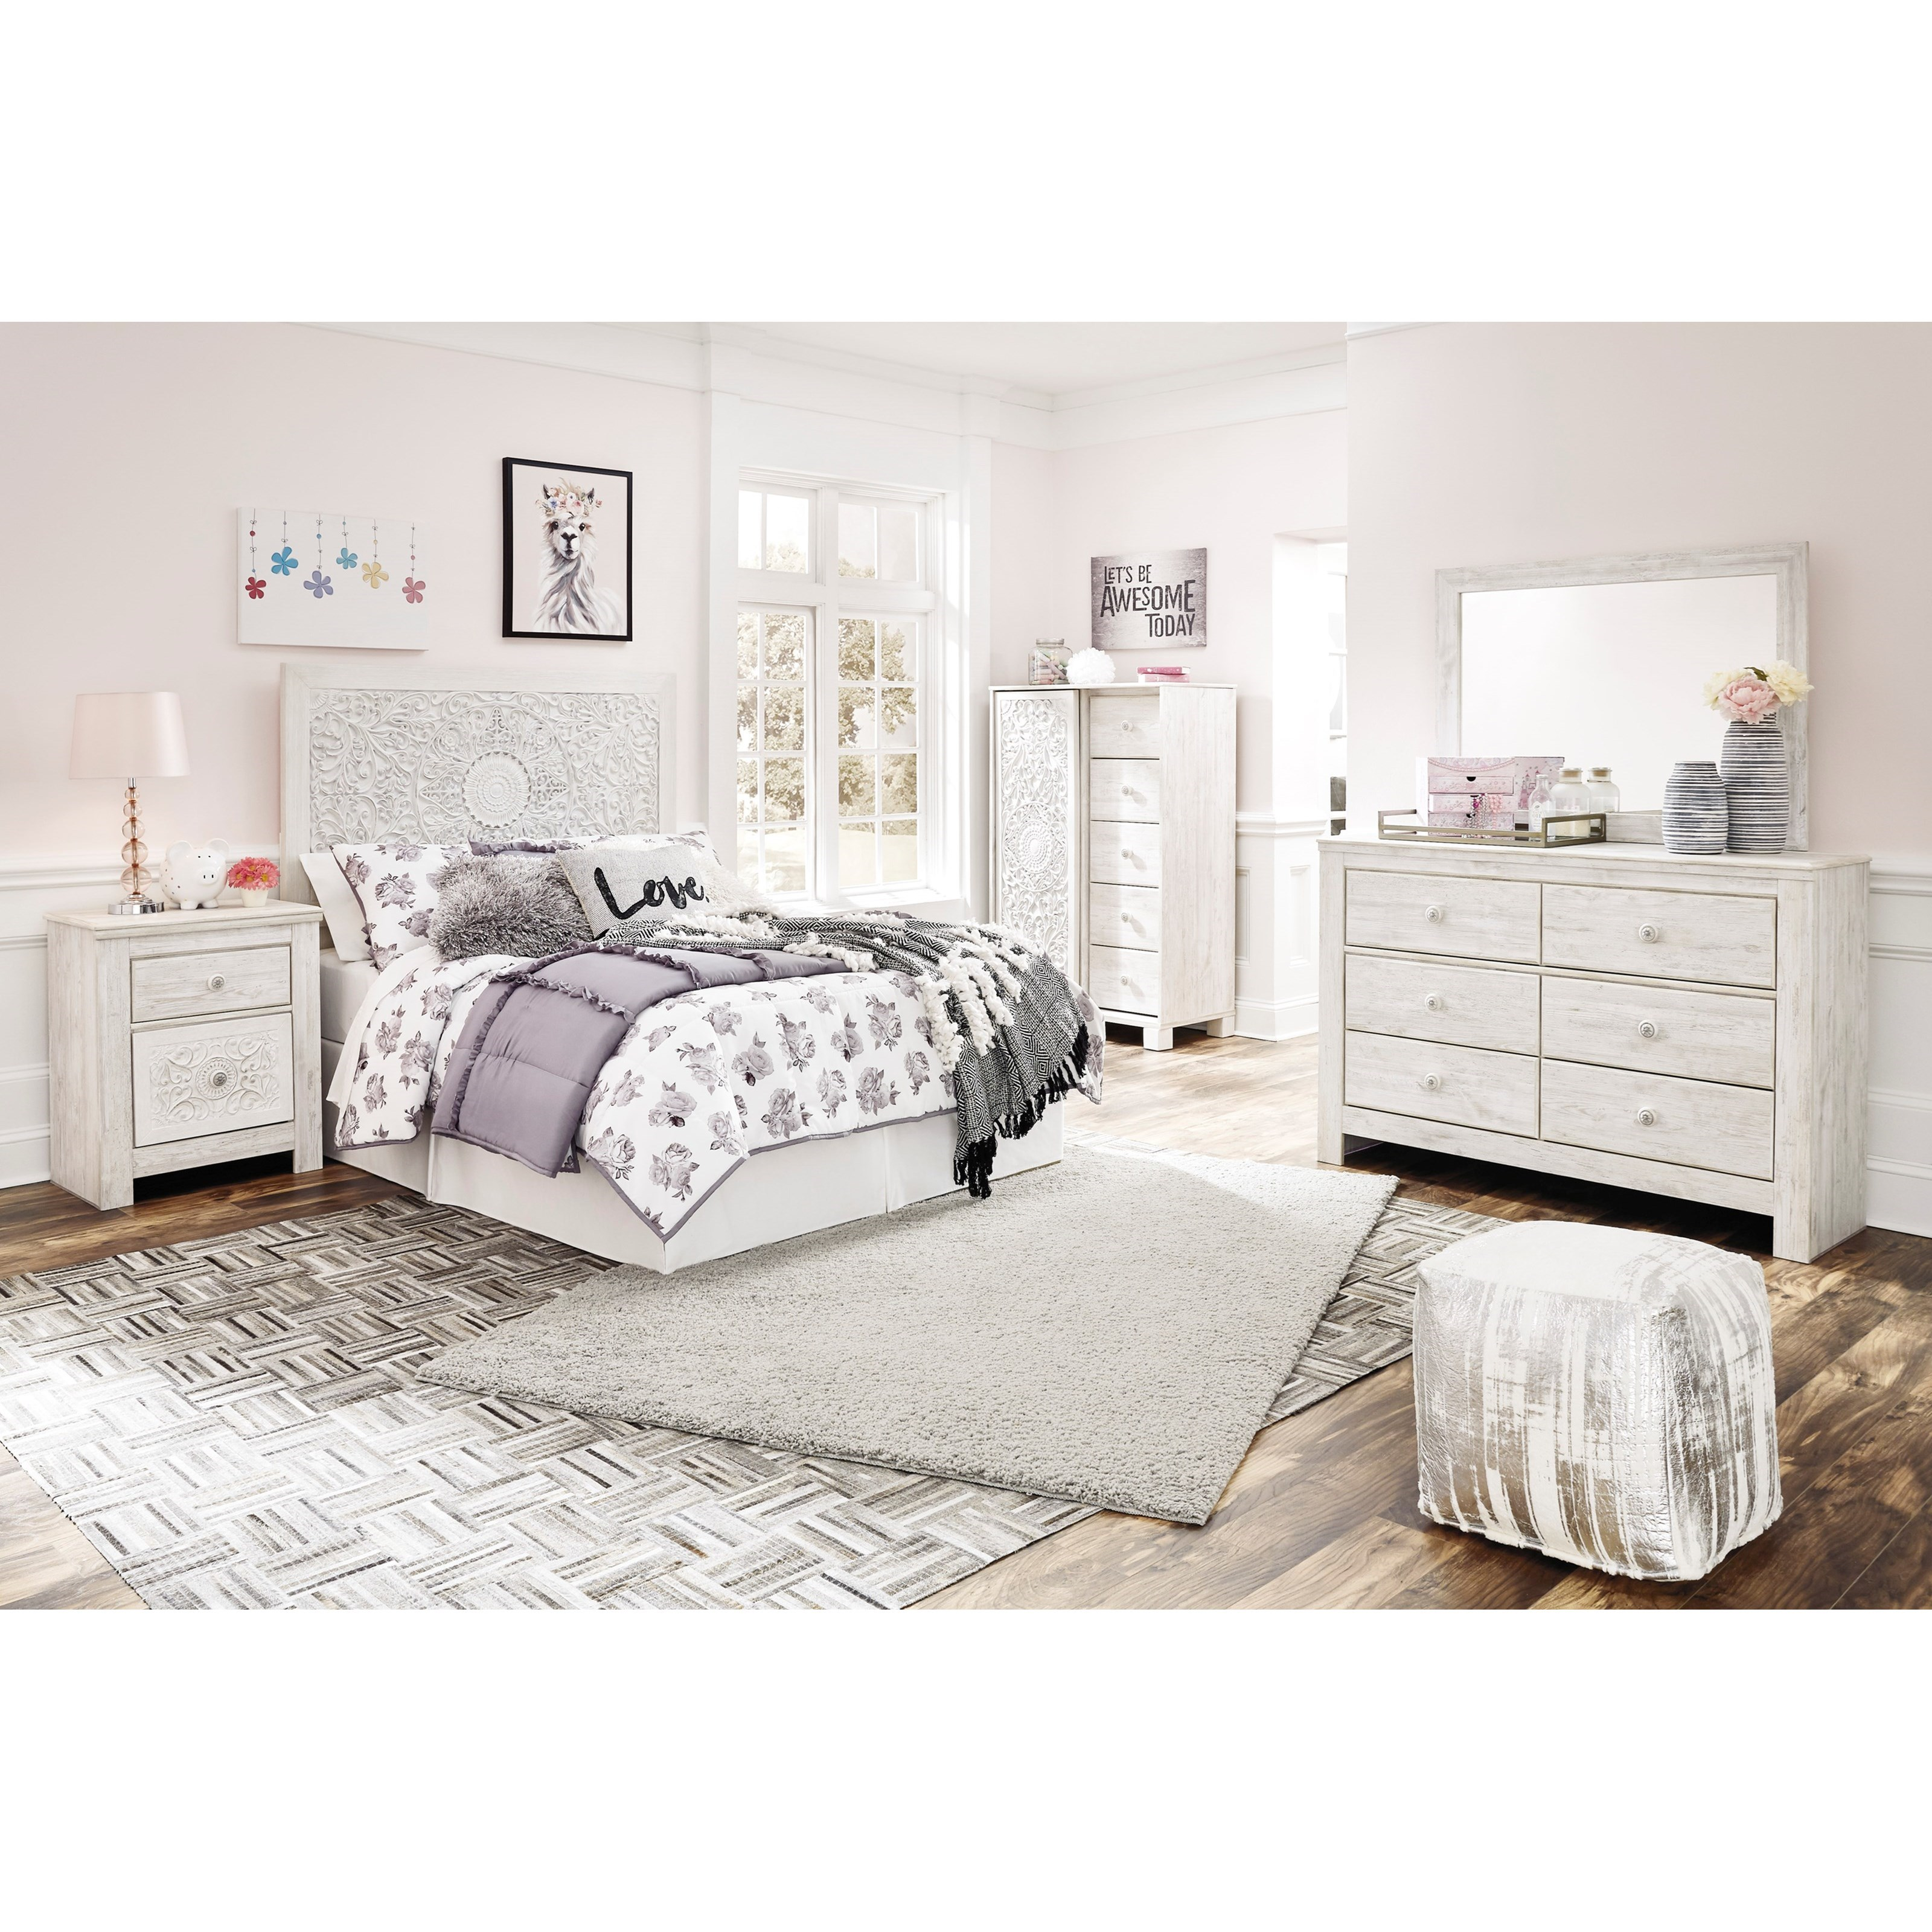 Ashley Furniture Signature Design Paxberry B181 F Bedroom Group 1 Full Bedroom Group Del Sol Furniture Bedroom Groups